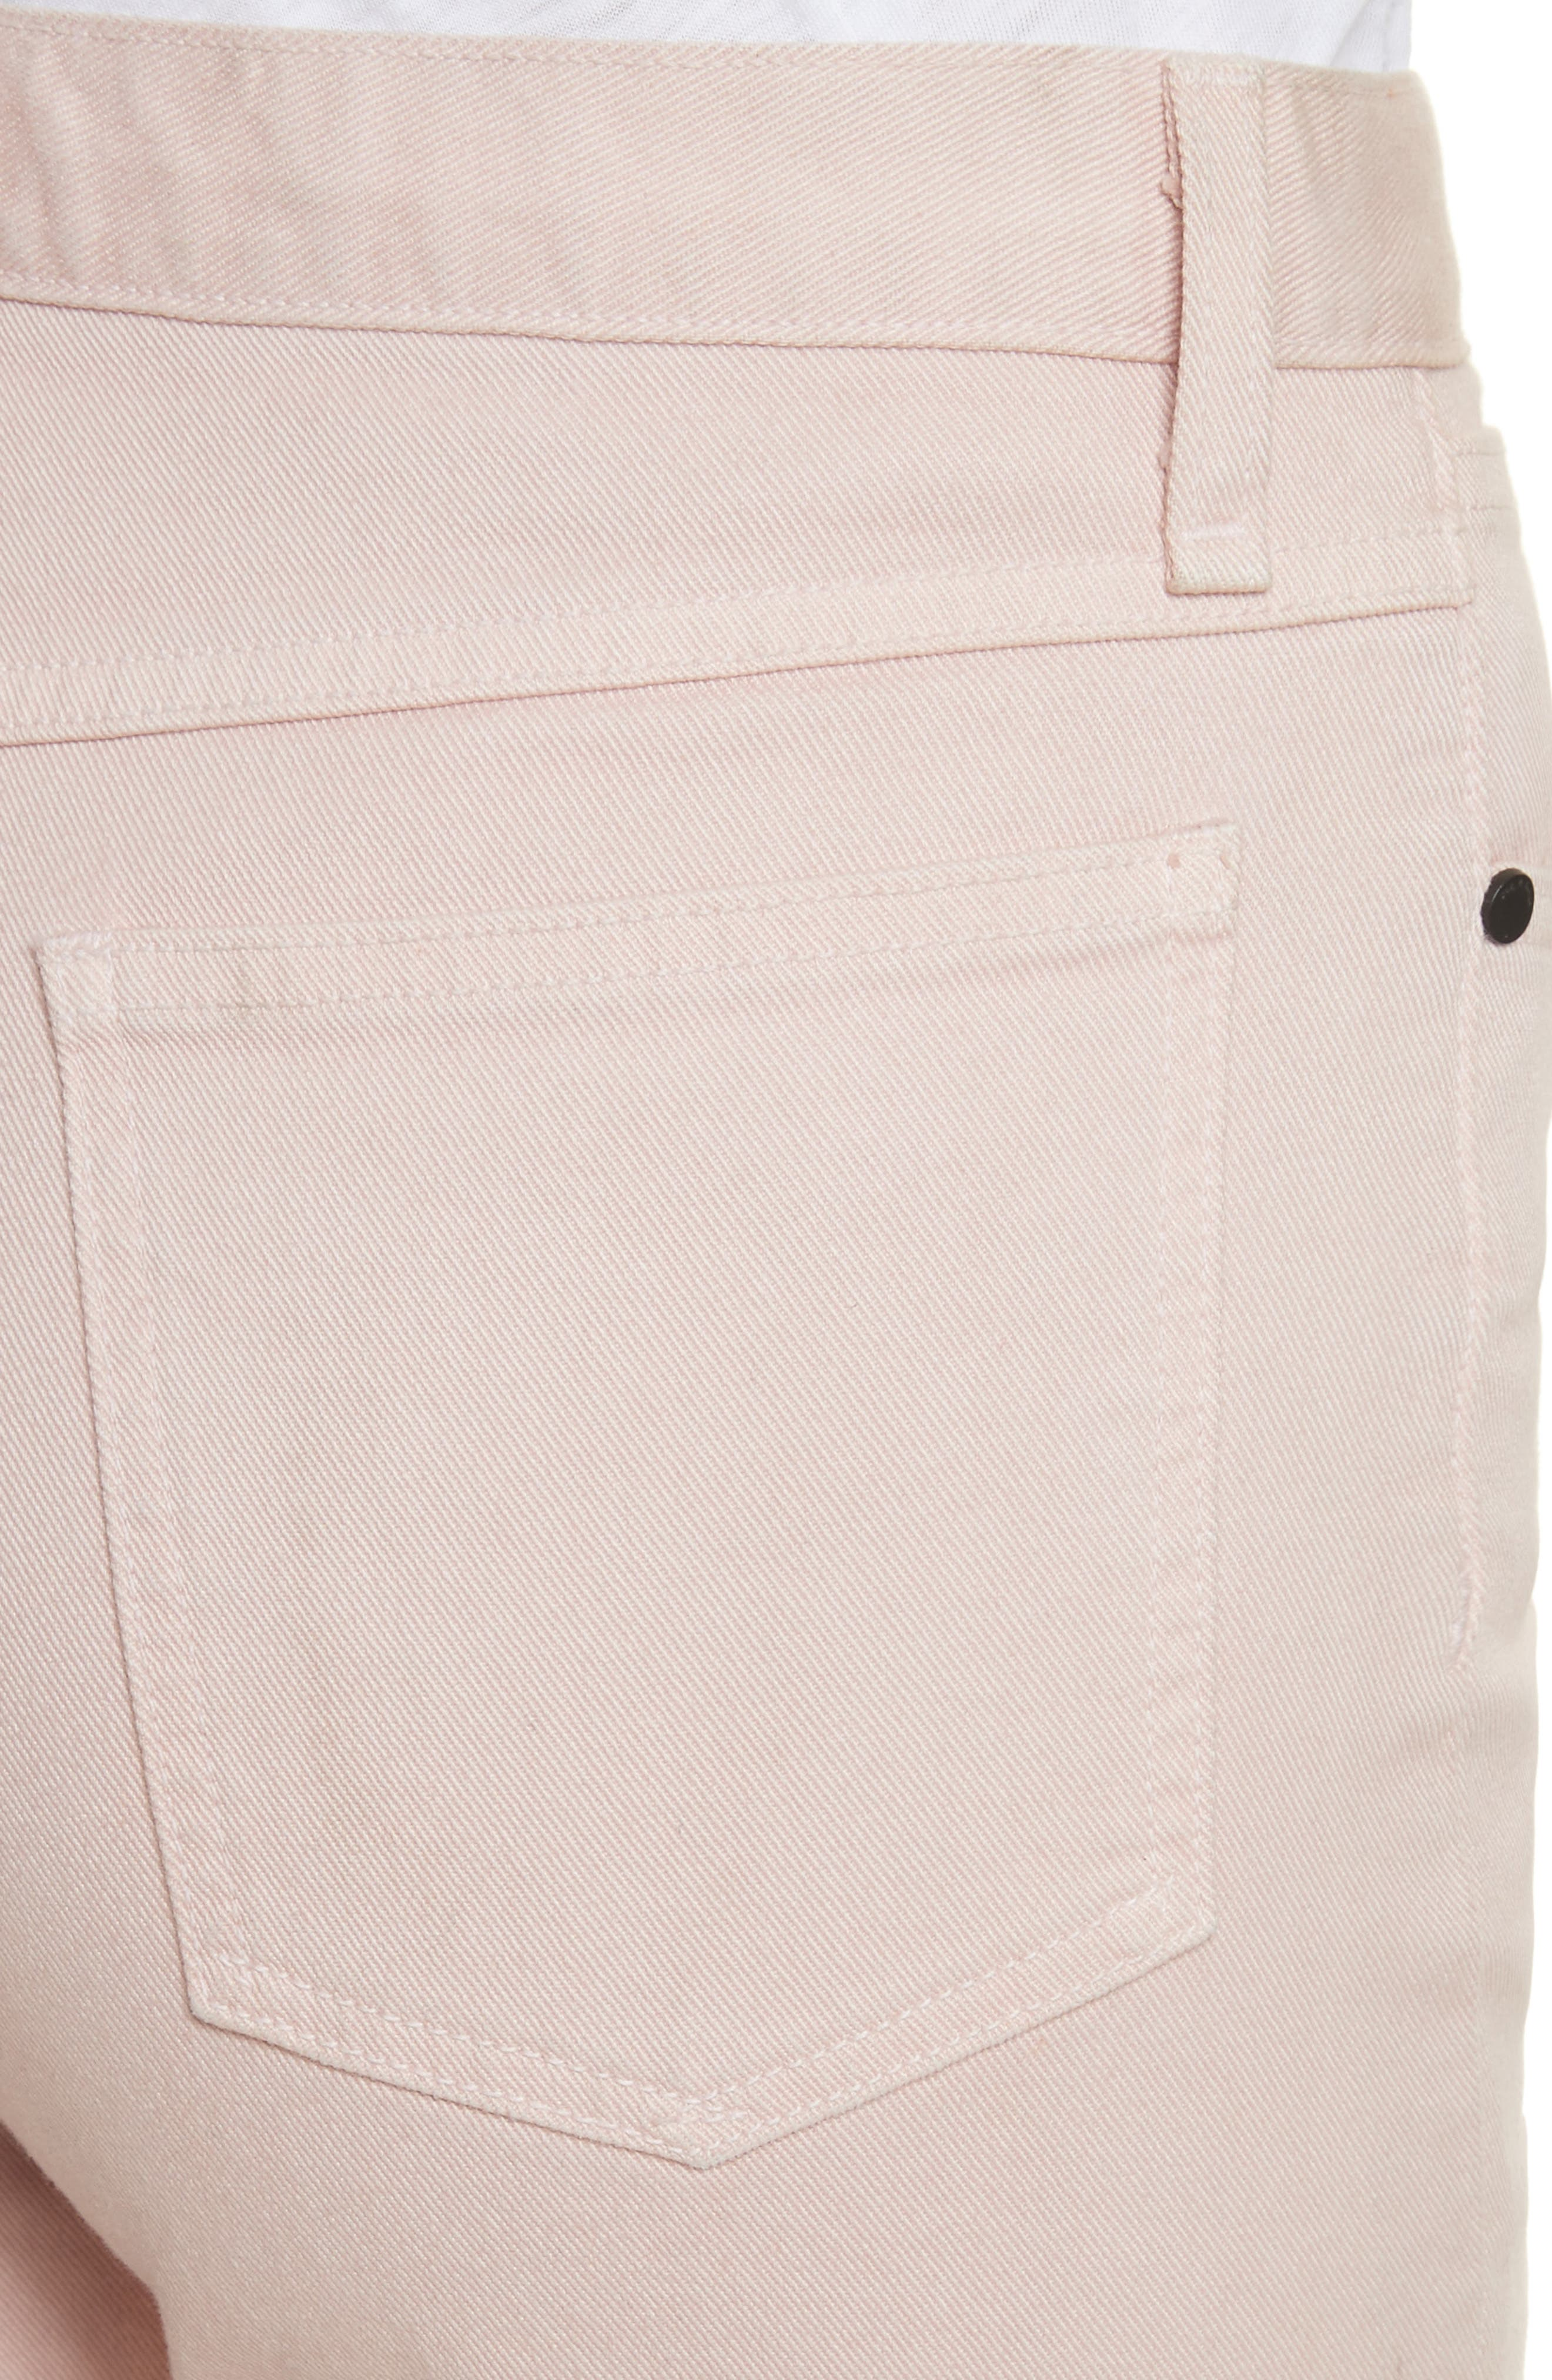 Justine High Waist Trouser Jeans,                             Alternate thumbnail 4, color,                             Blush Twill